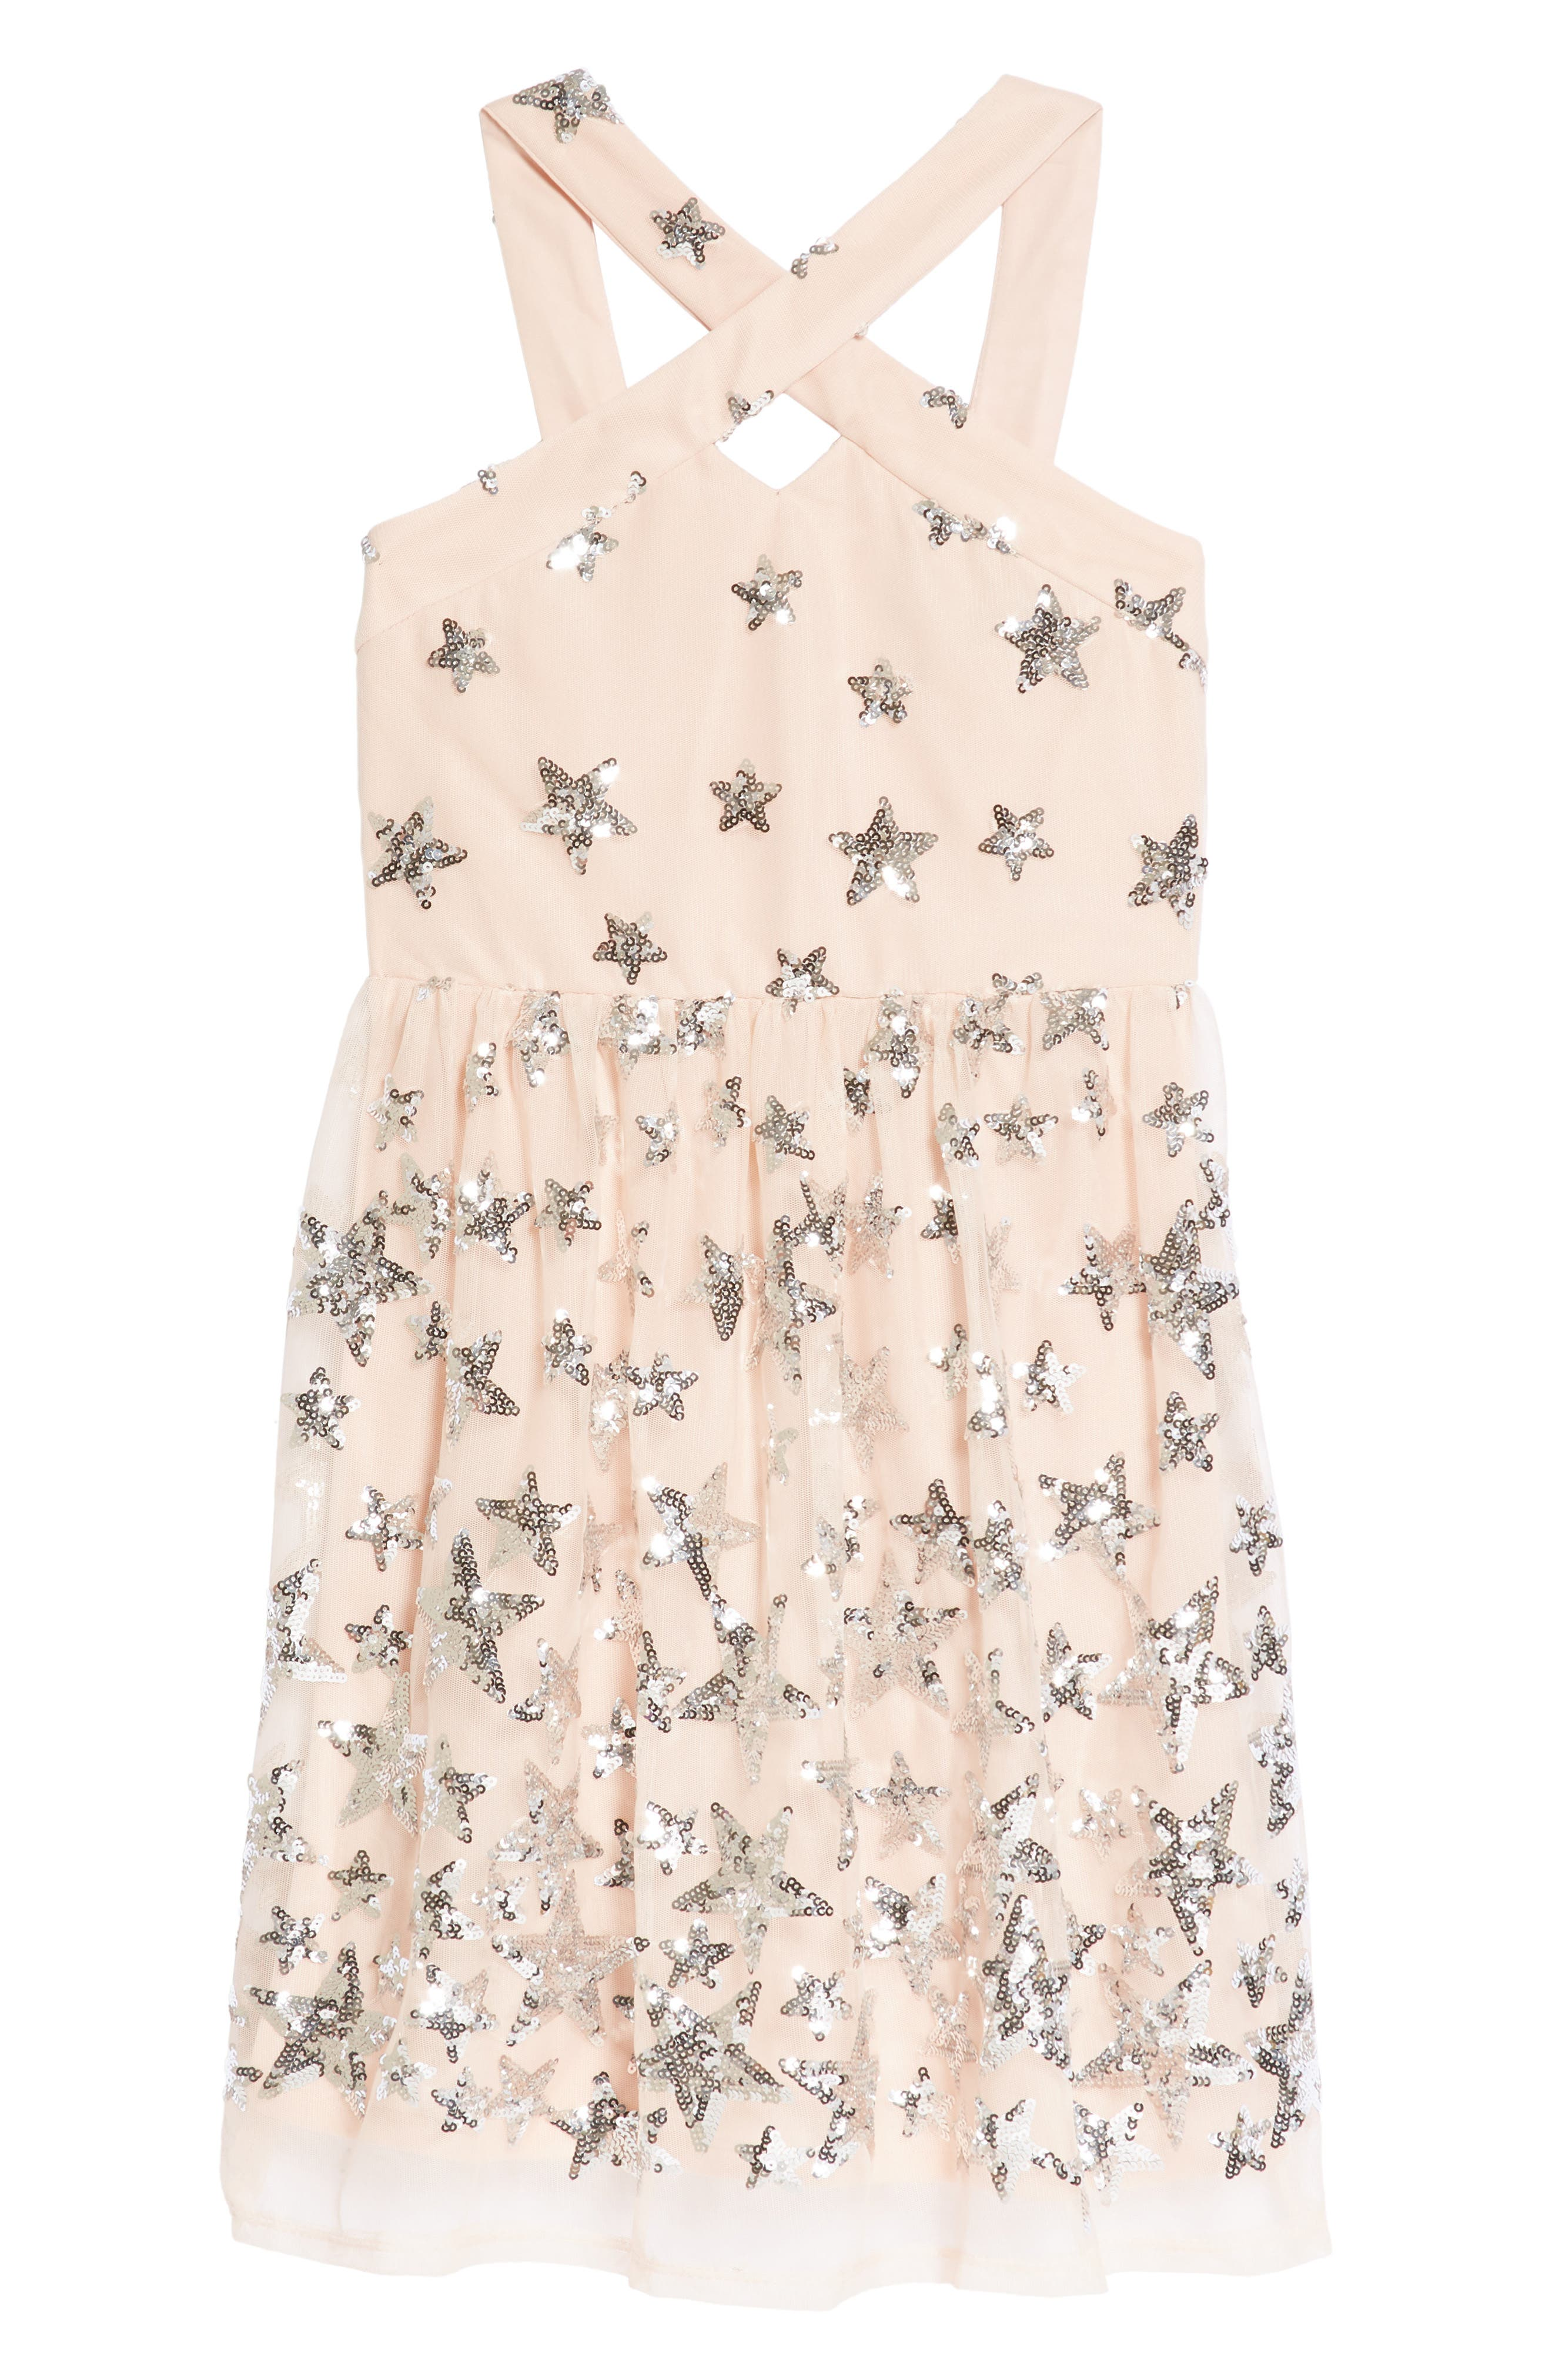 Sequin Embellished Star Party Dress,                             Main thumbnail 1, color,                             689